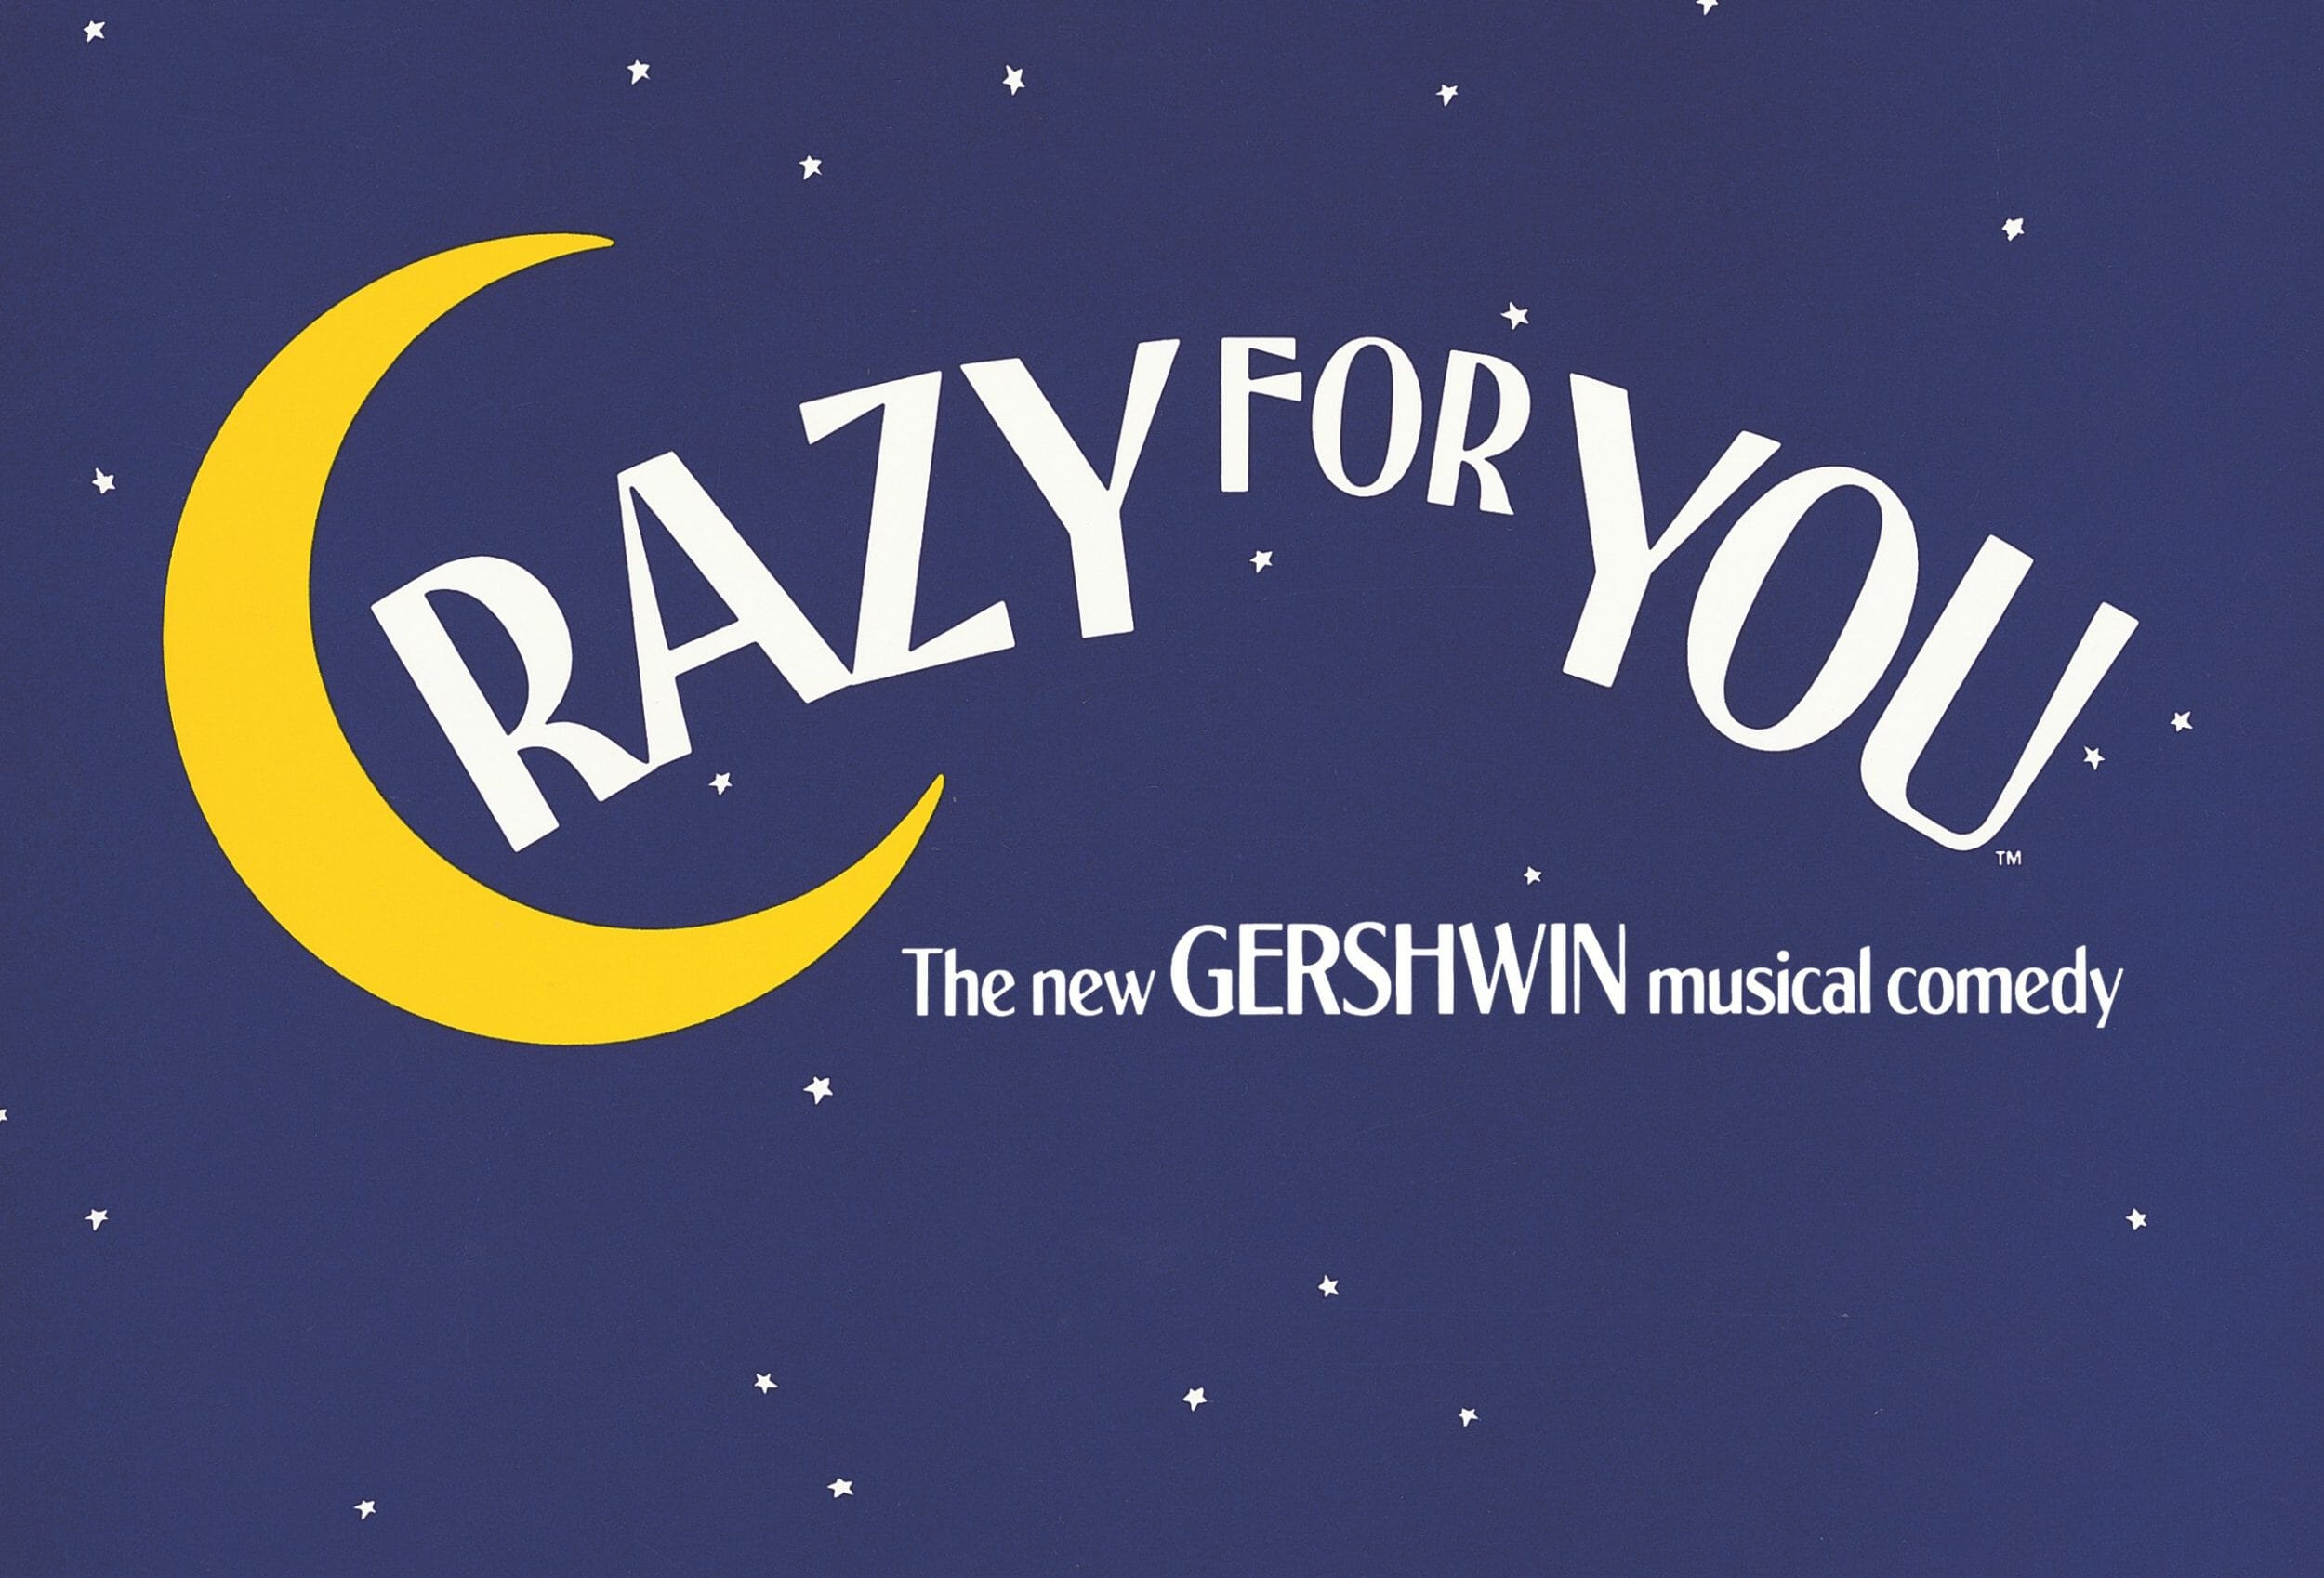 Cast and creatives announced for Drury Lane's production of 'Crazy for You'